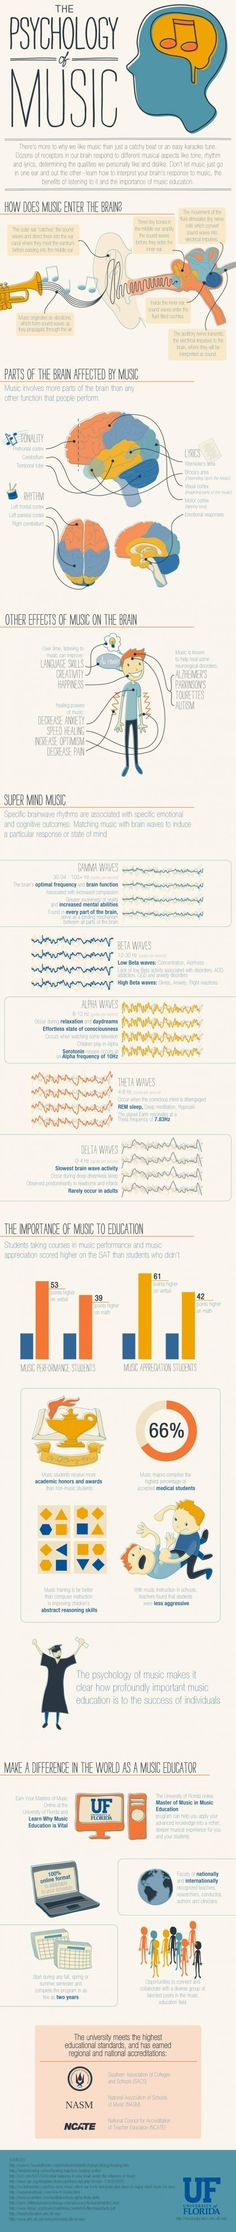 The Psychology of Music #psychology